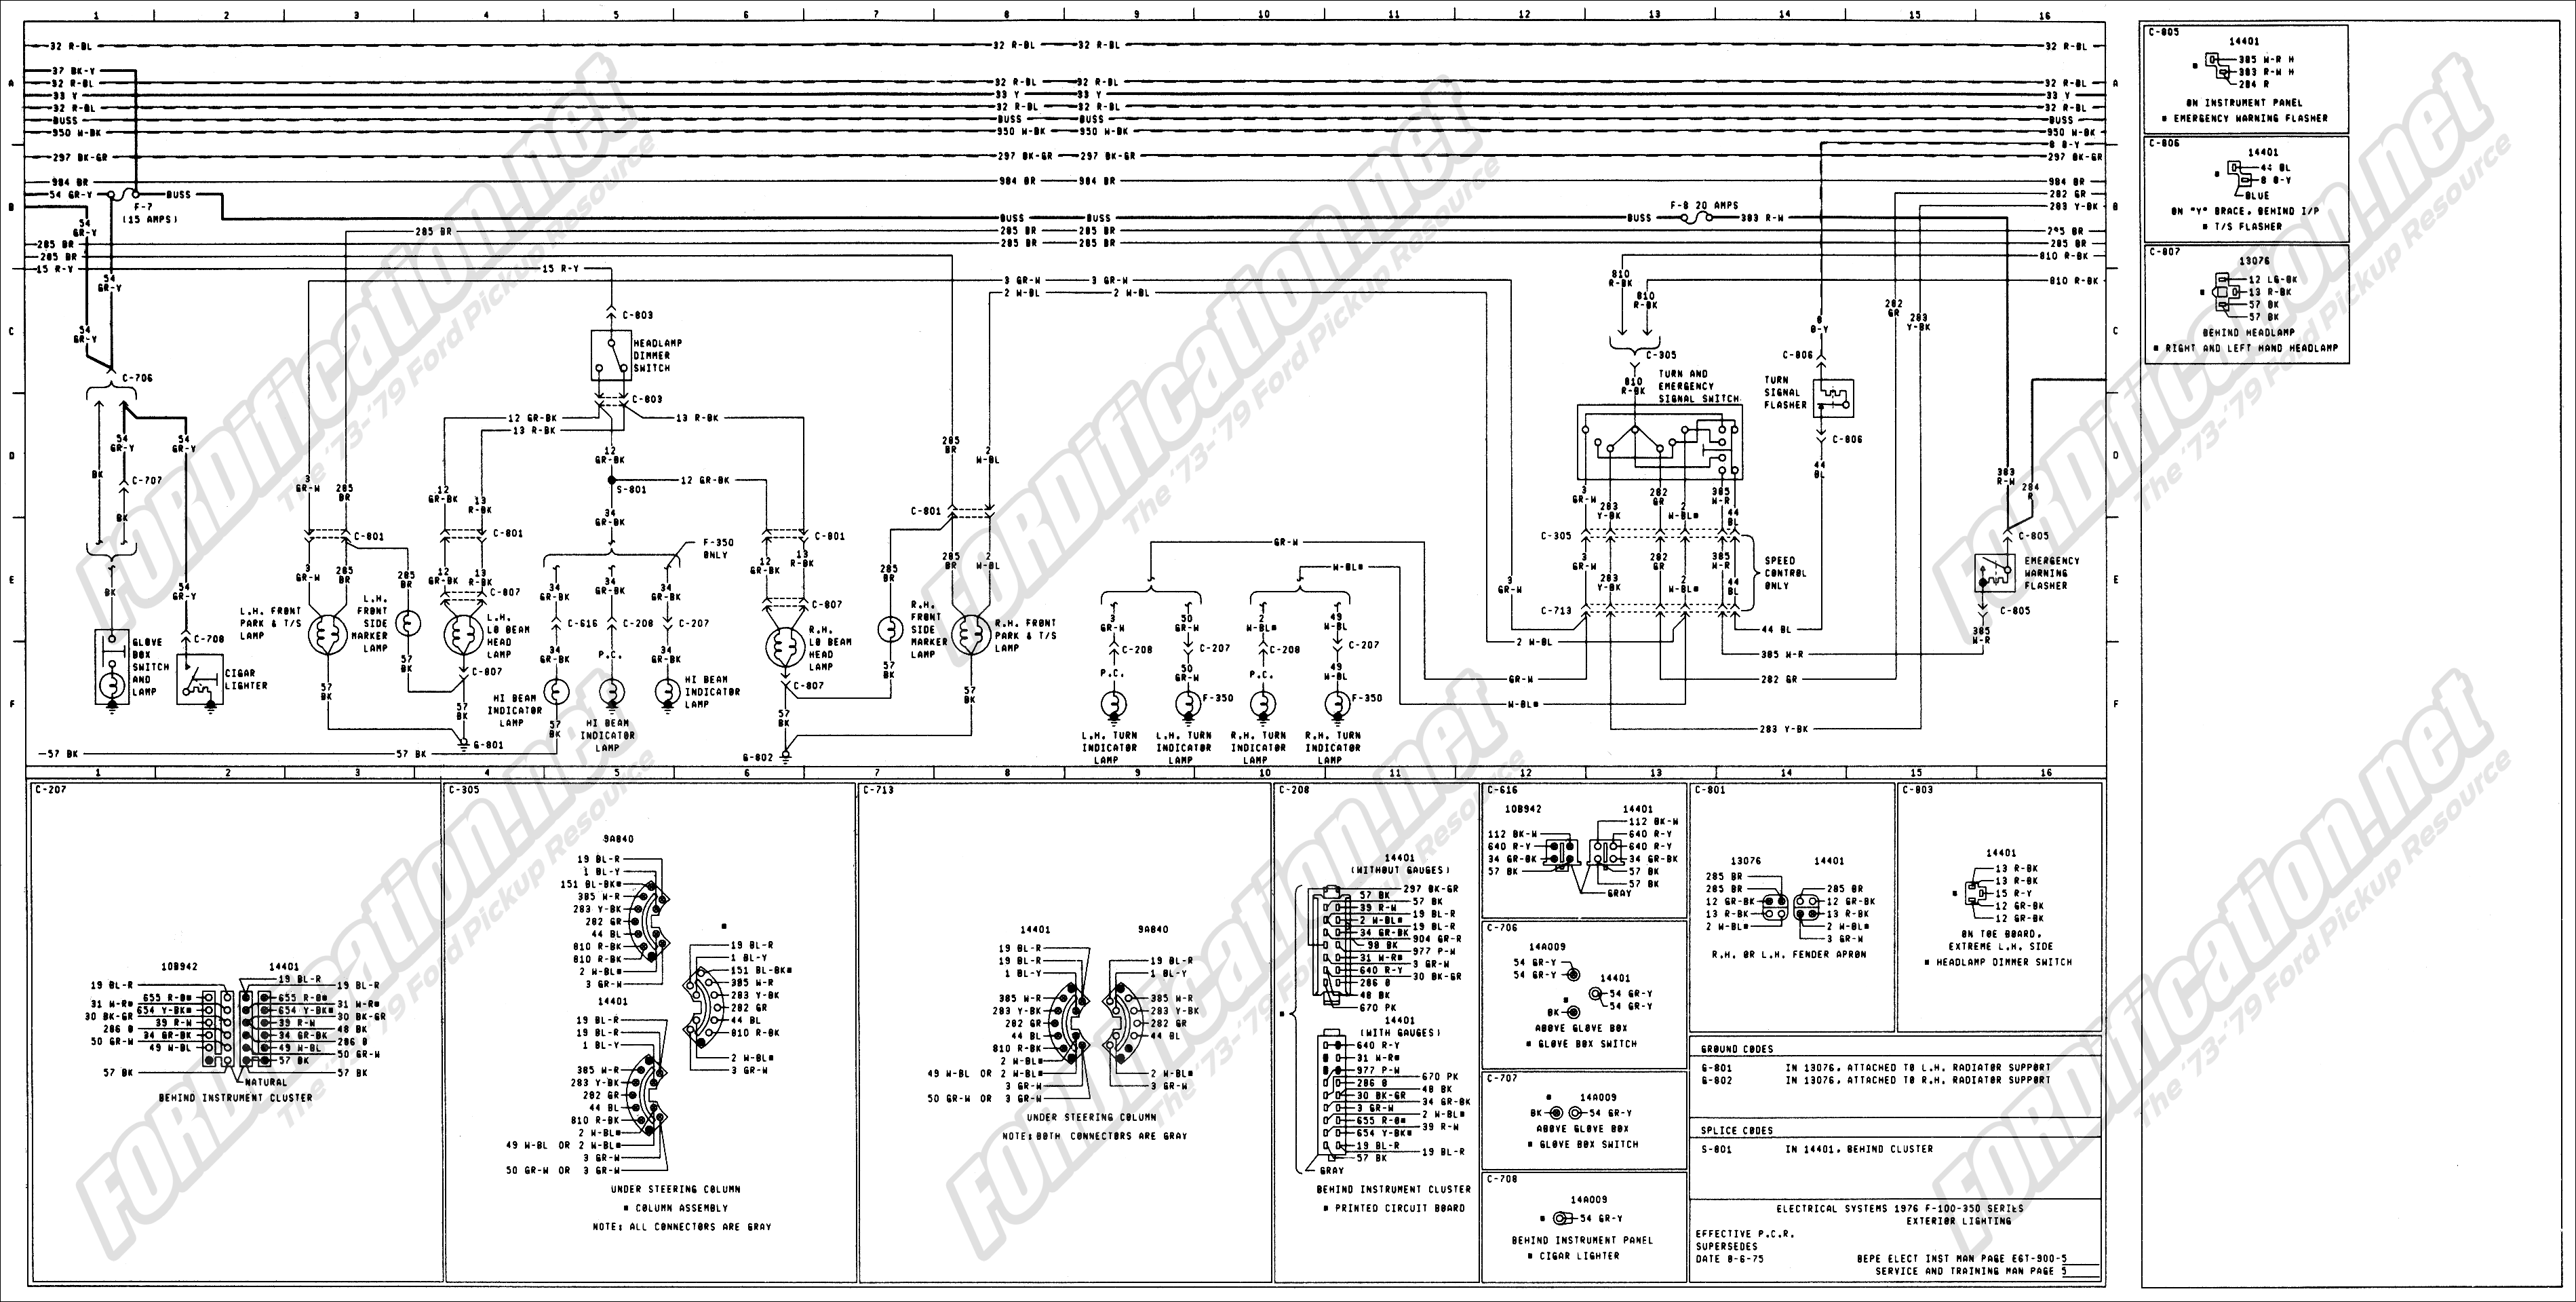 1983 F150 Instrument Cluster Wiring Diagram Will Be 150 1987 F Ford Solenoid 76 Diagrams For Another Blog About U2022 Rh Twosoutherndivas Co 84 Headlight